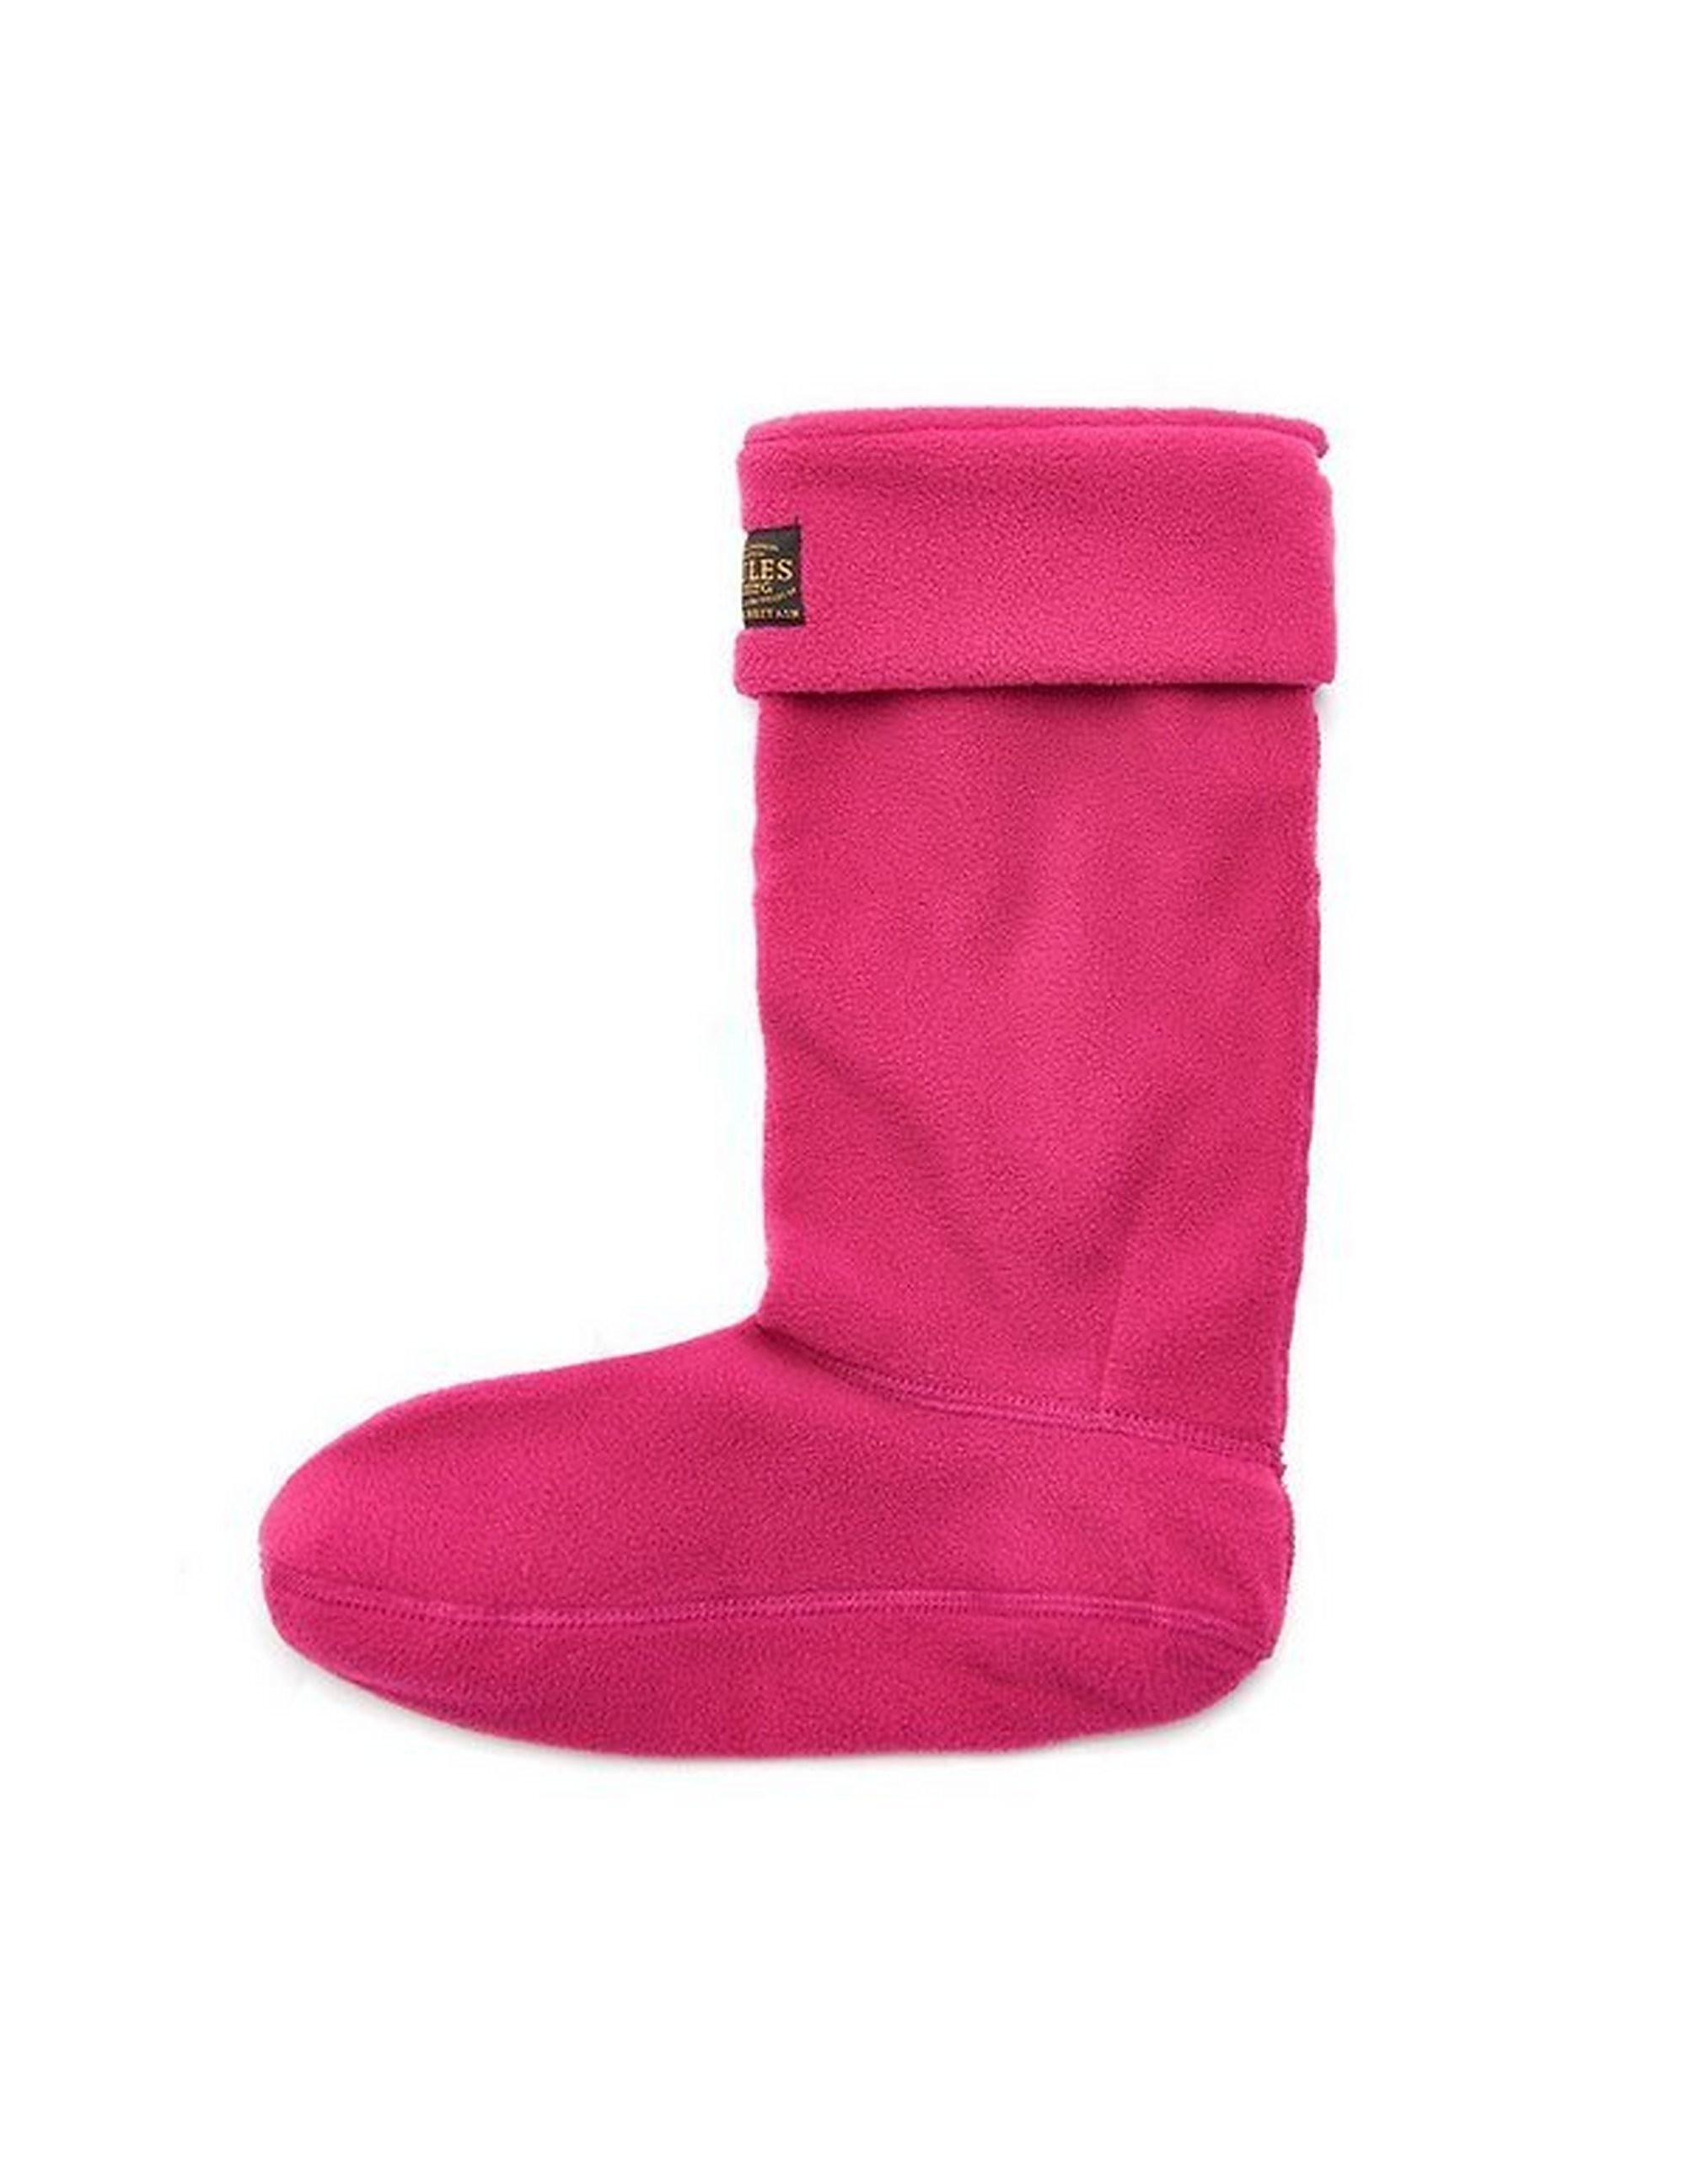 Joules  Women's Welton Fleece Welly Socks - Pink